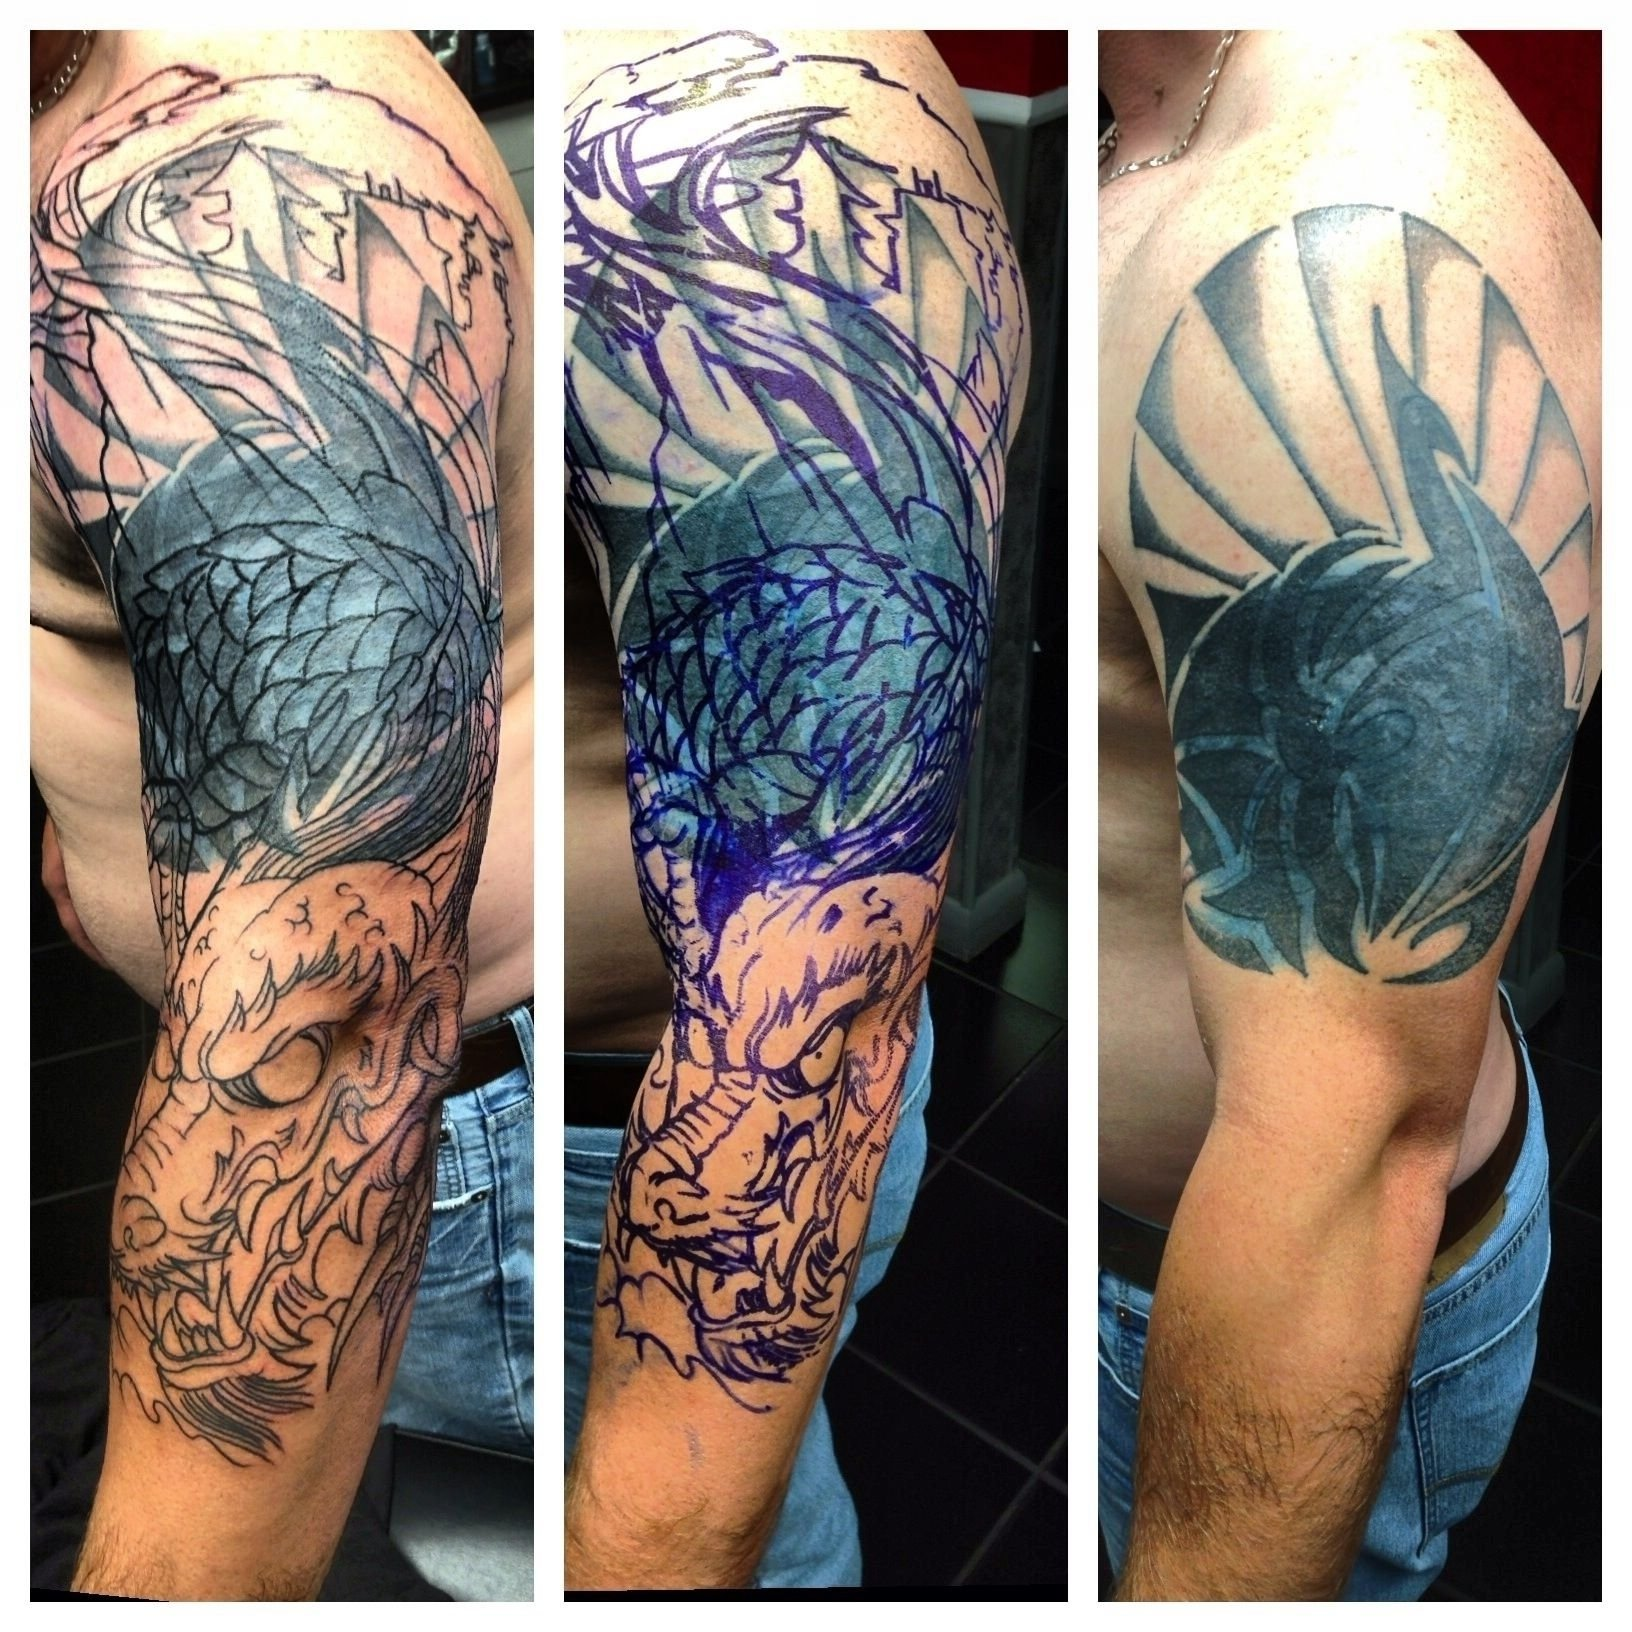 tattoo-cover-up-ideas-for-men-top-tribal-tattoo-cover-up-ideas